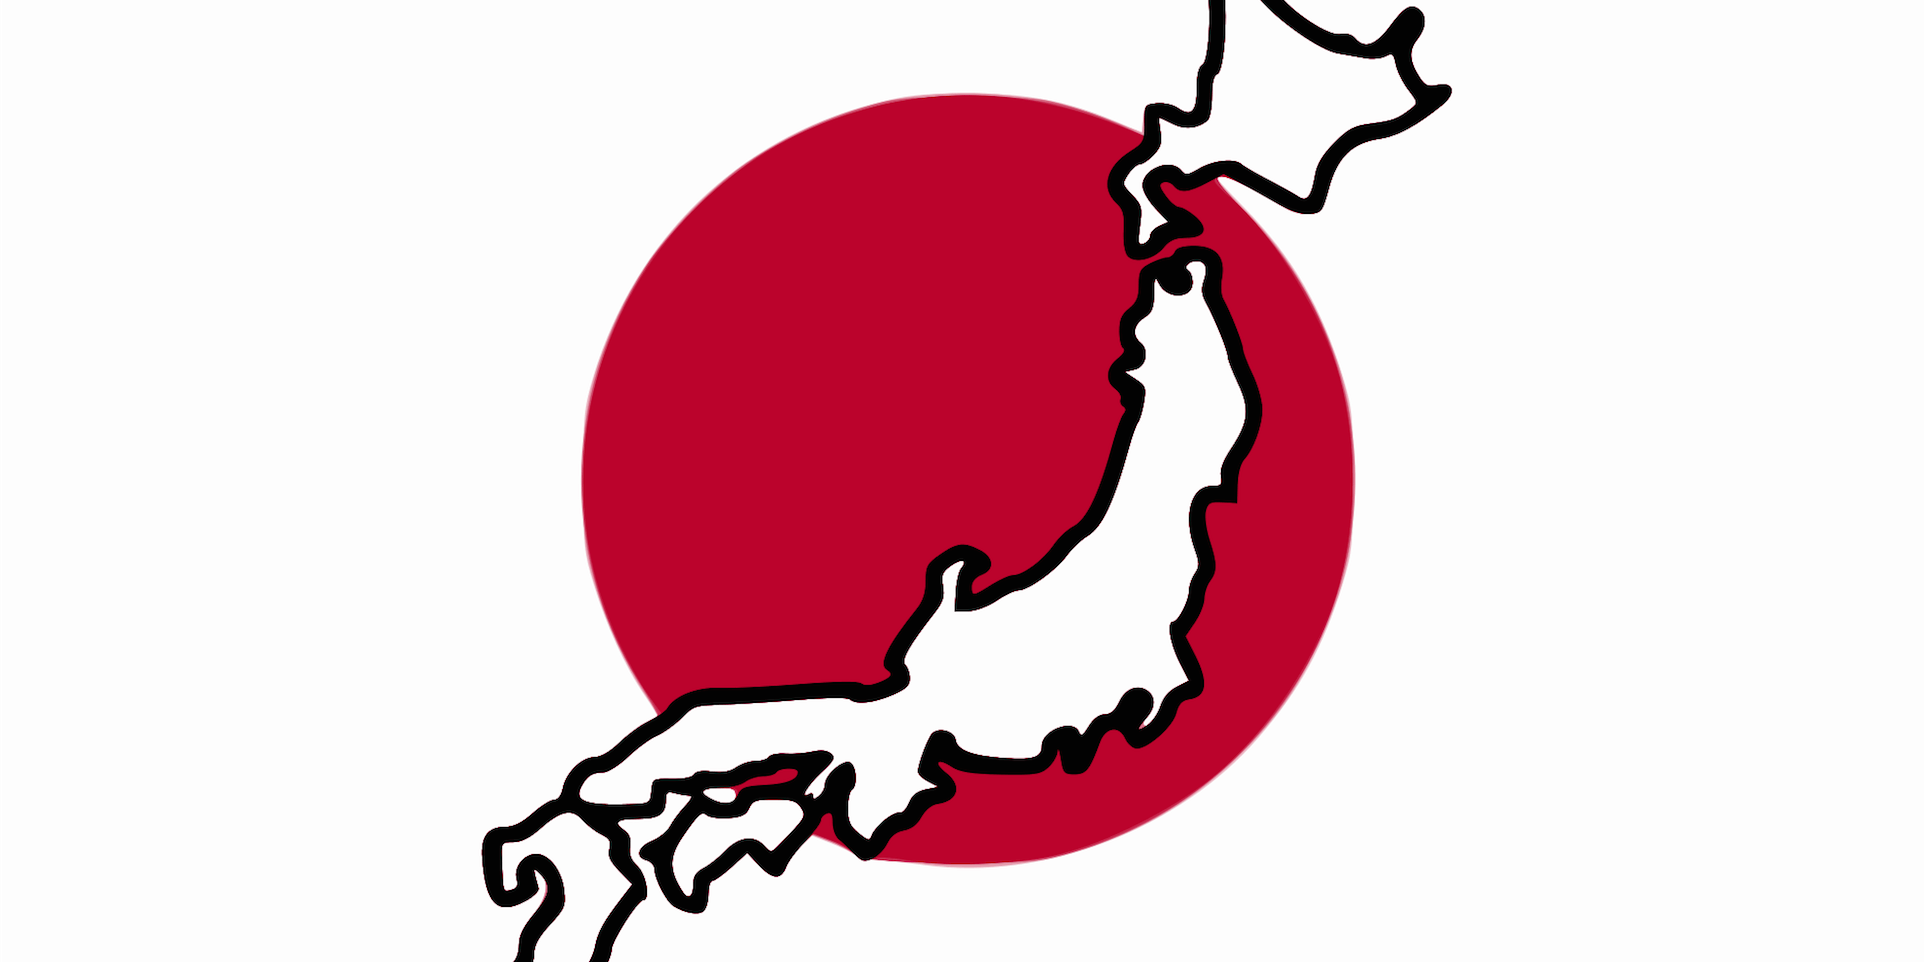 S phillips curve looks. Japan clipart